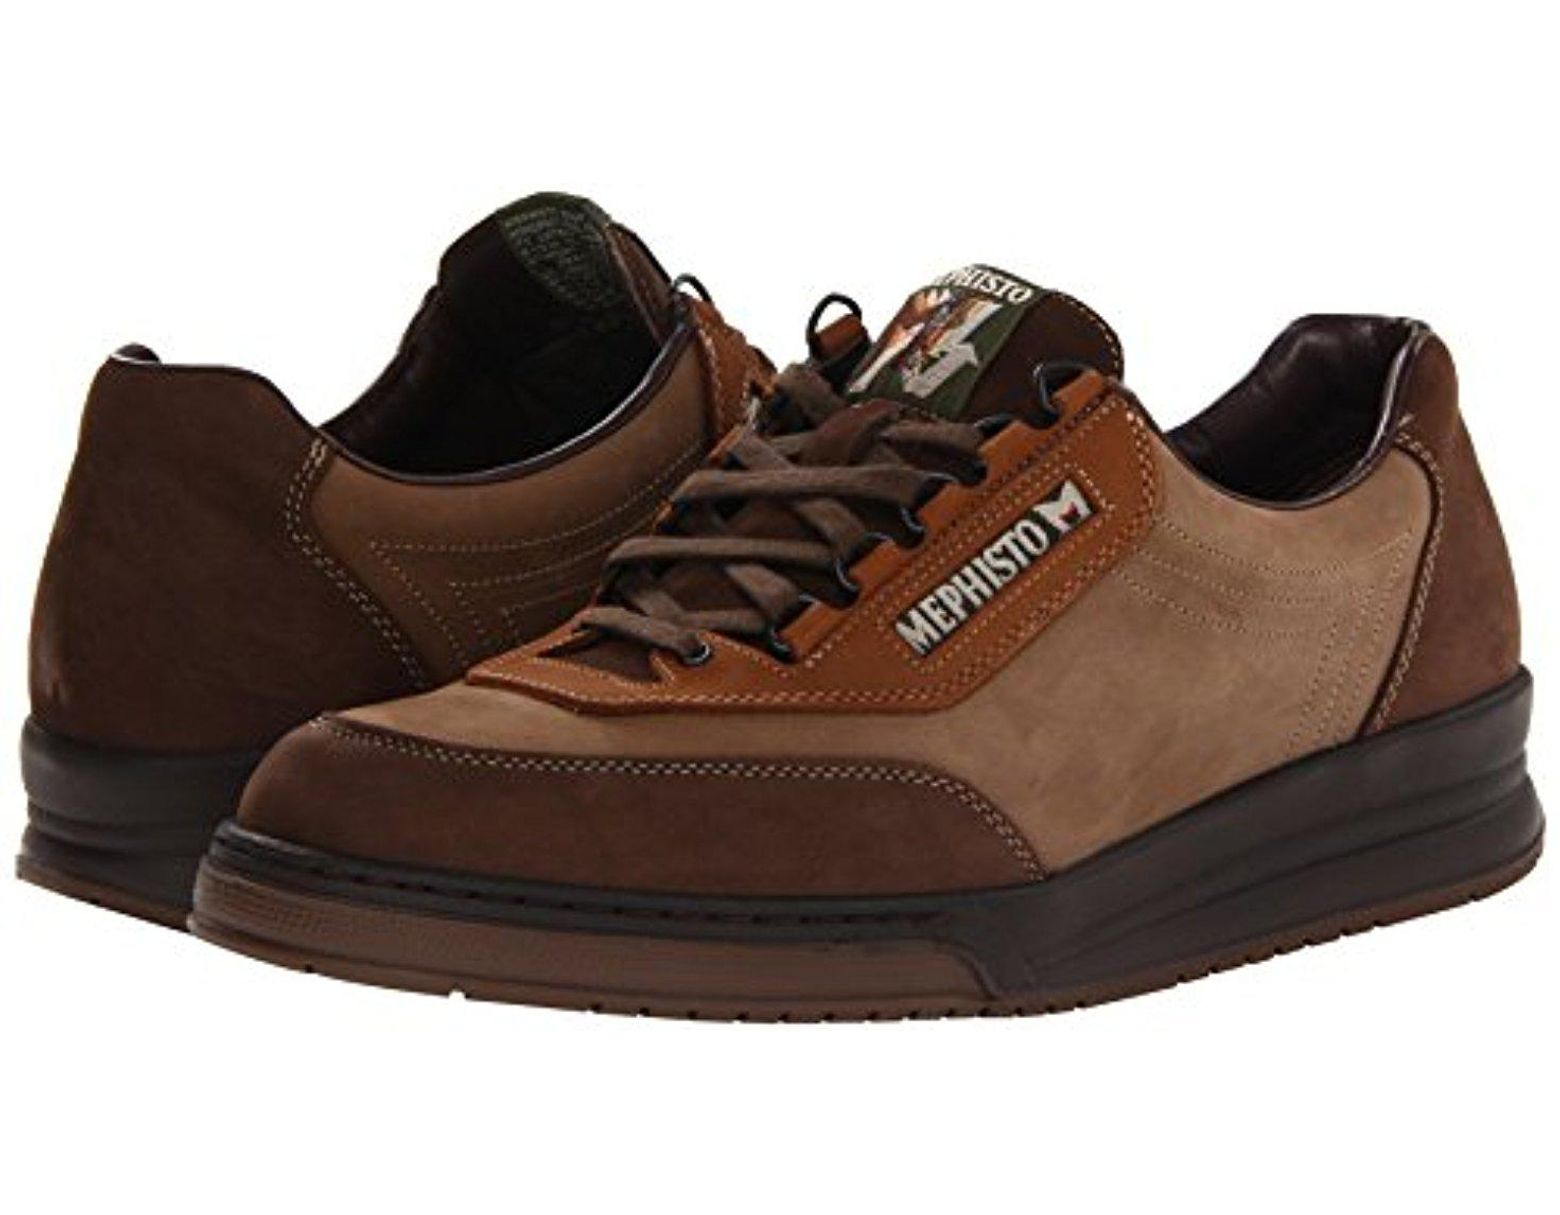 042dca55defb3 Men's Brown Match Walking Shoe